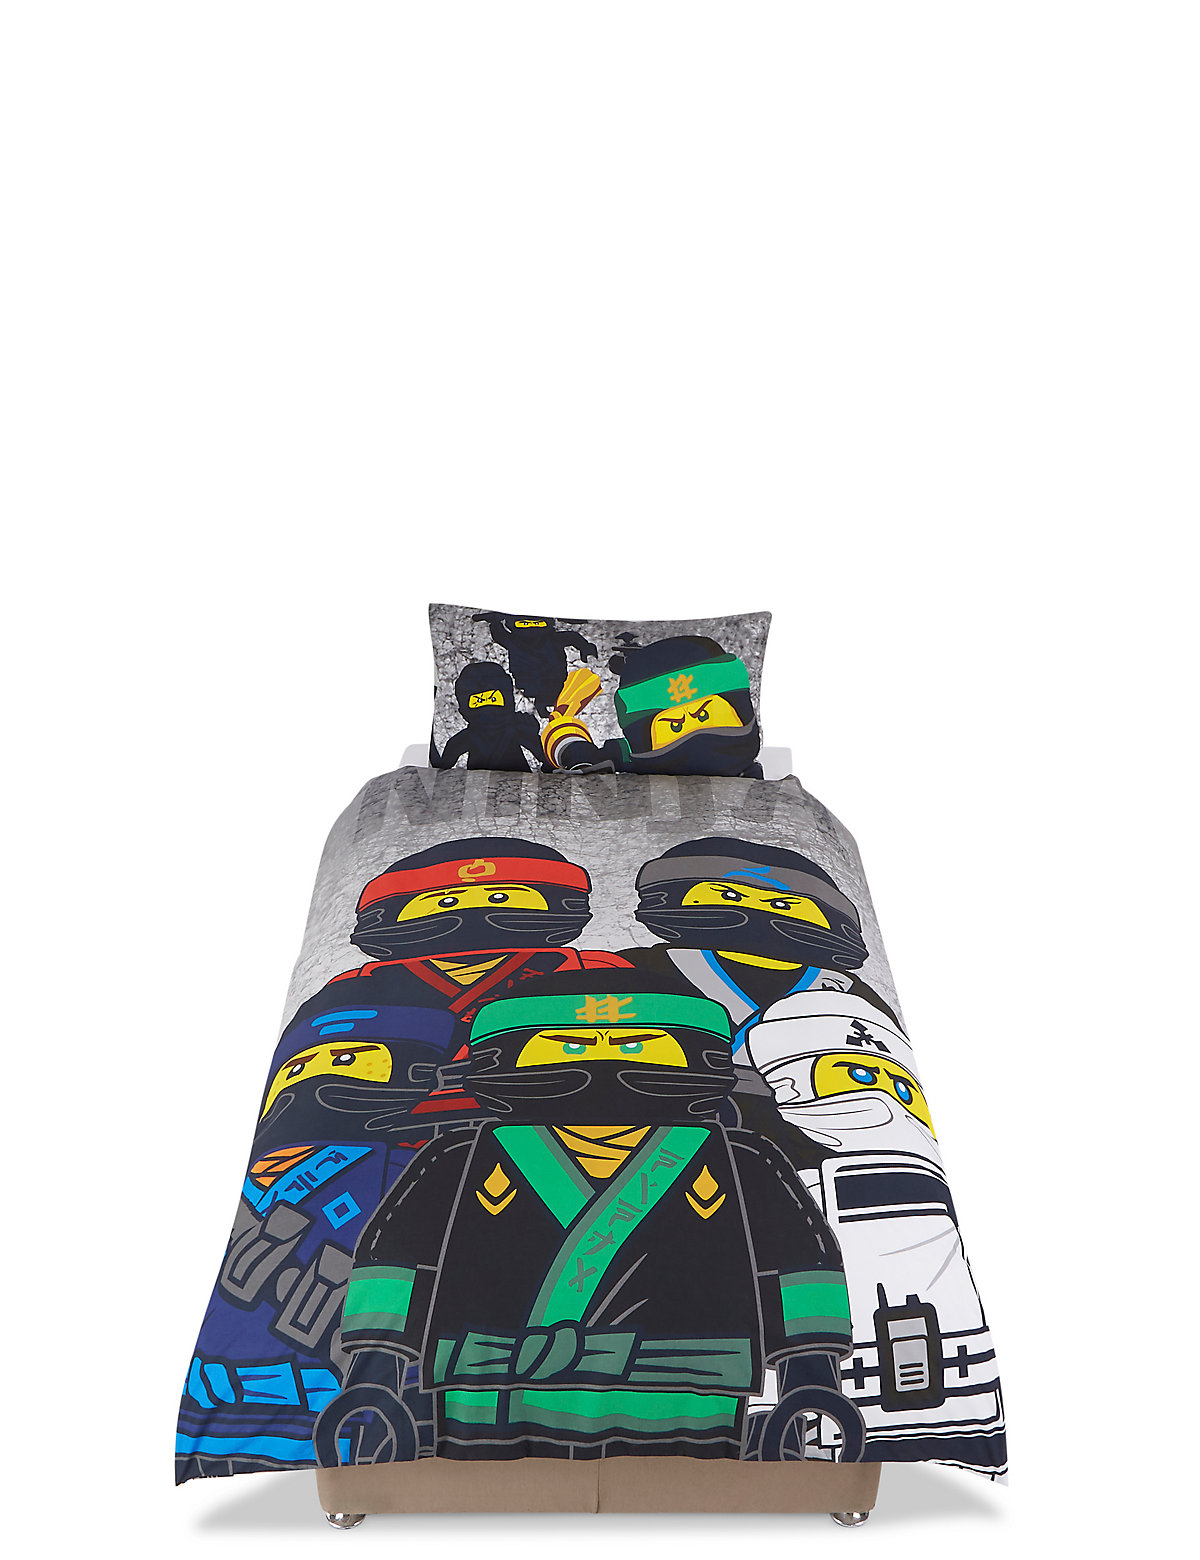 Ninjago Lego Bedding Set.